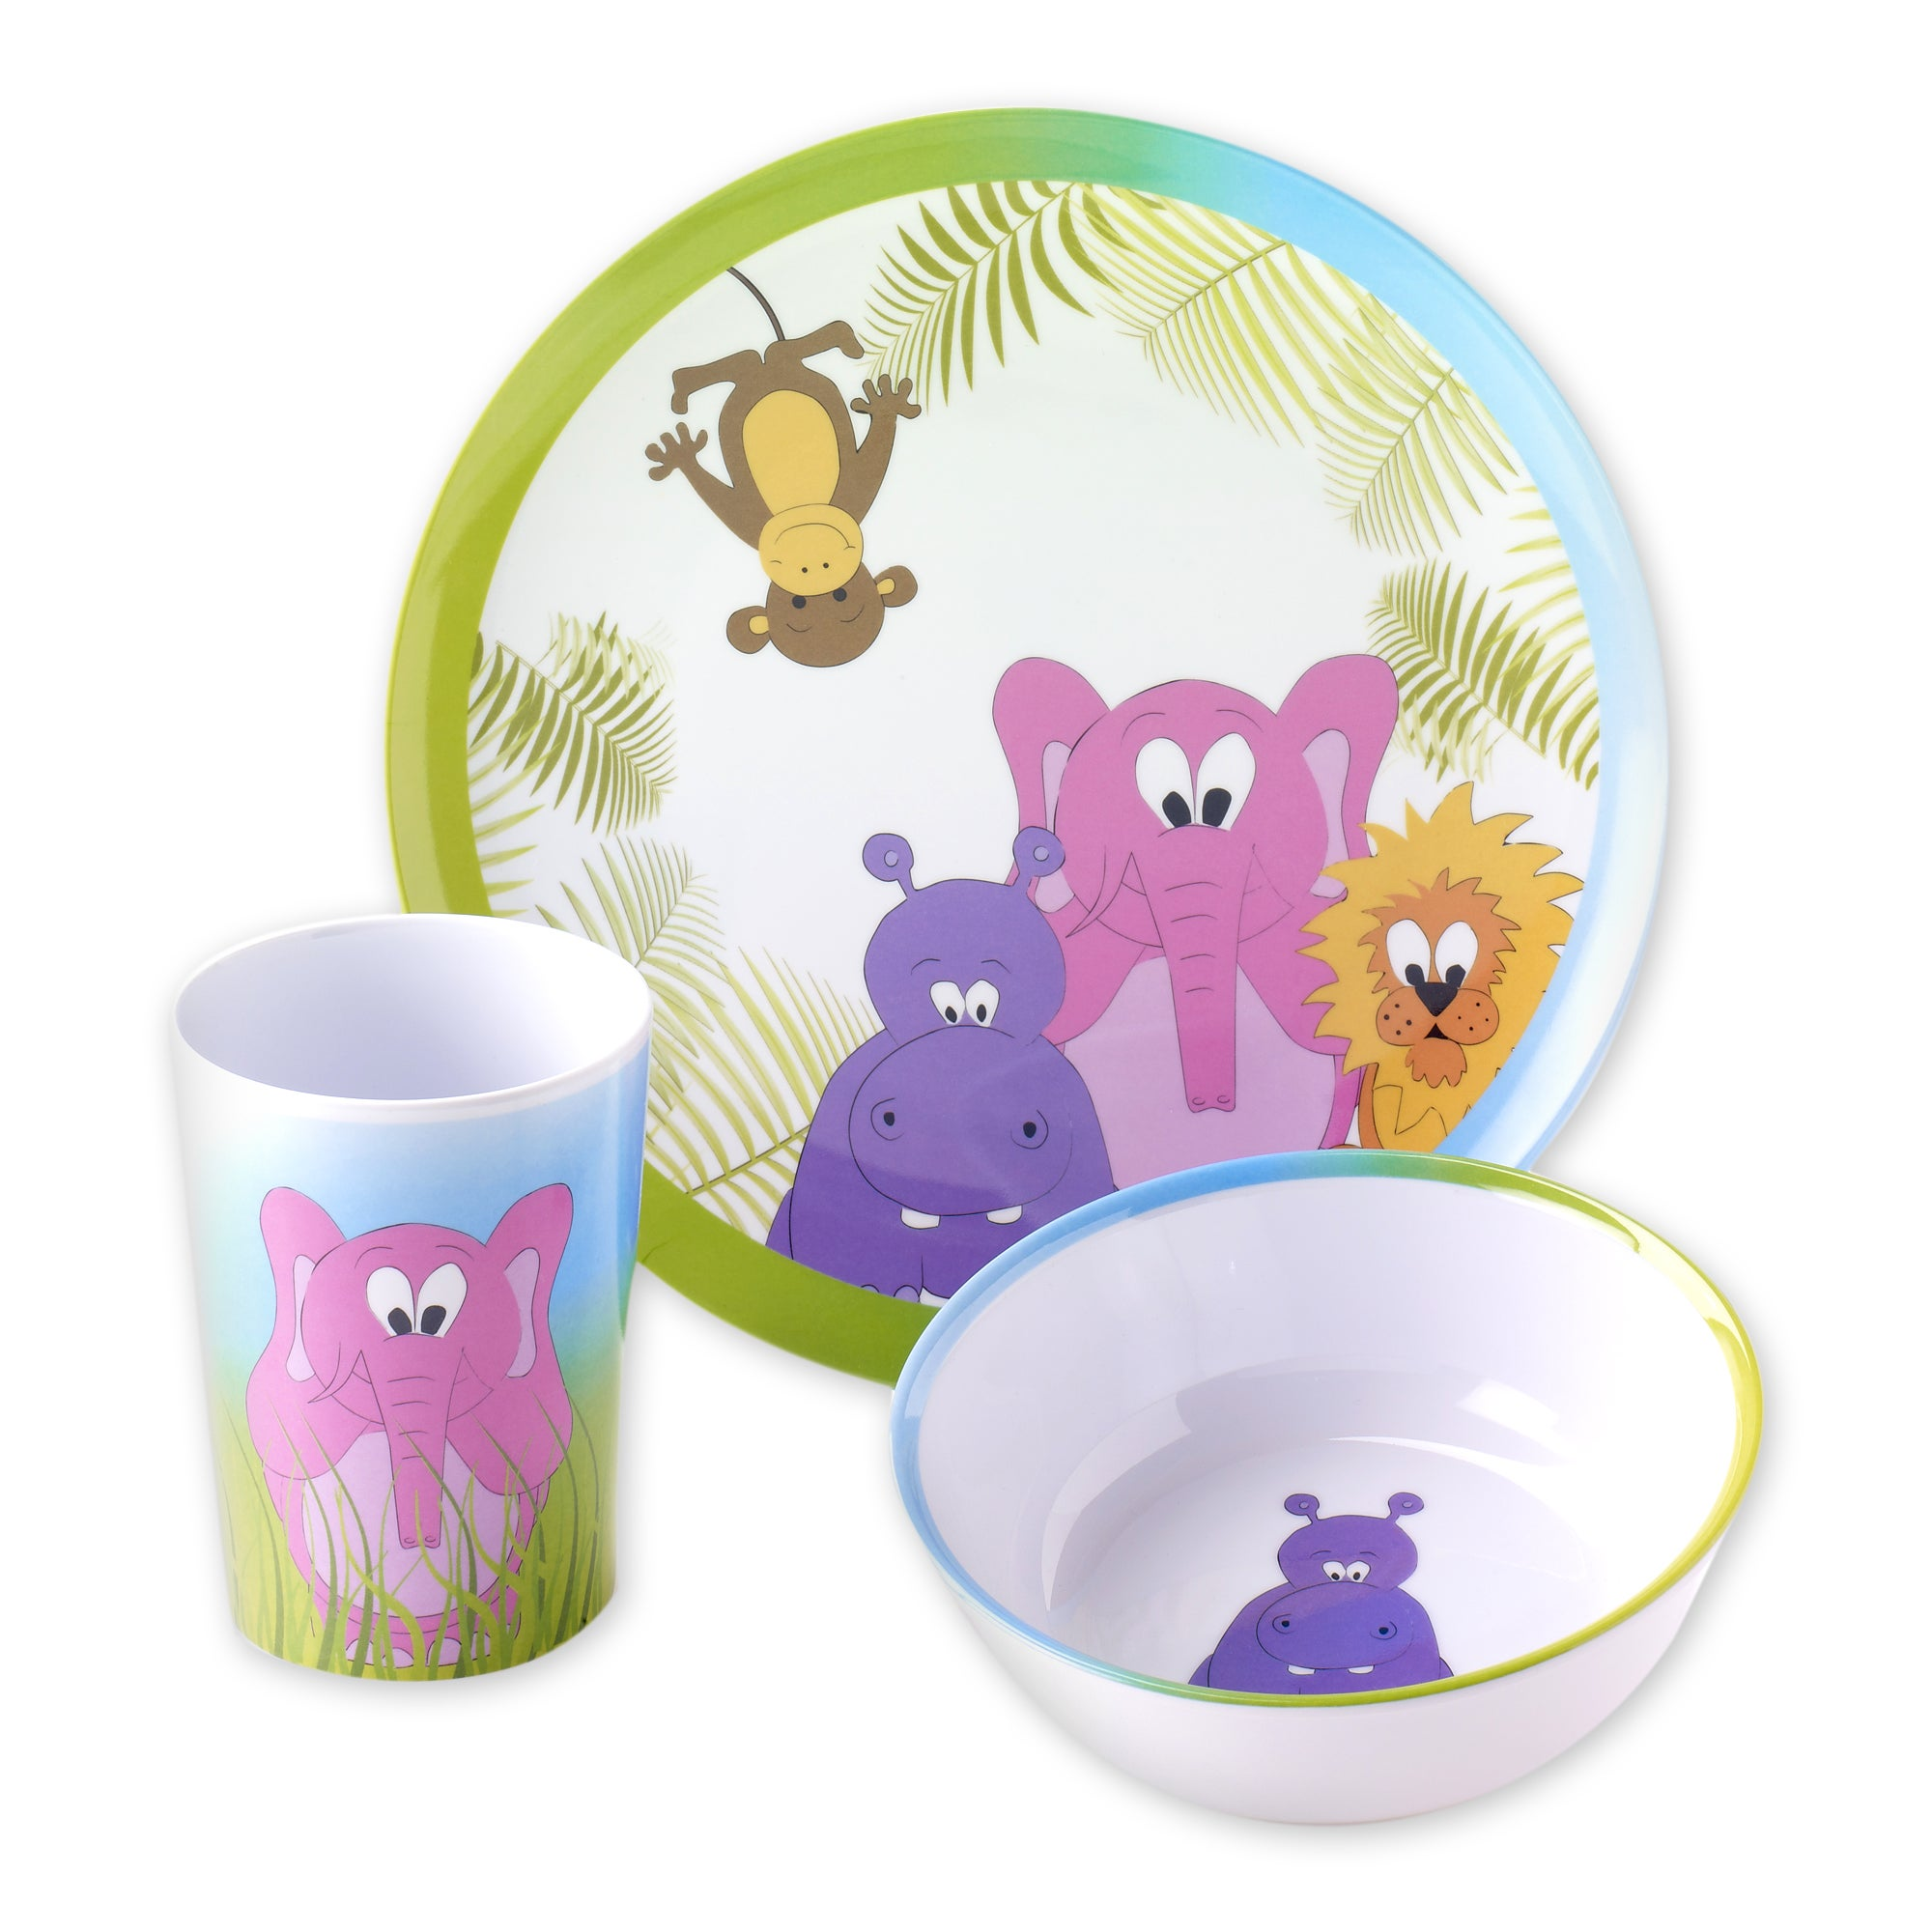 Viners Jungle 3 Piece Melamine Dinner Set